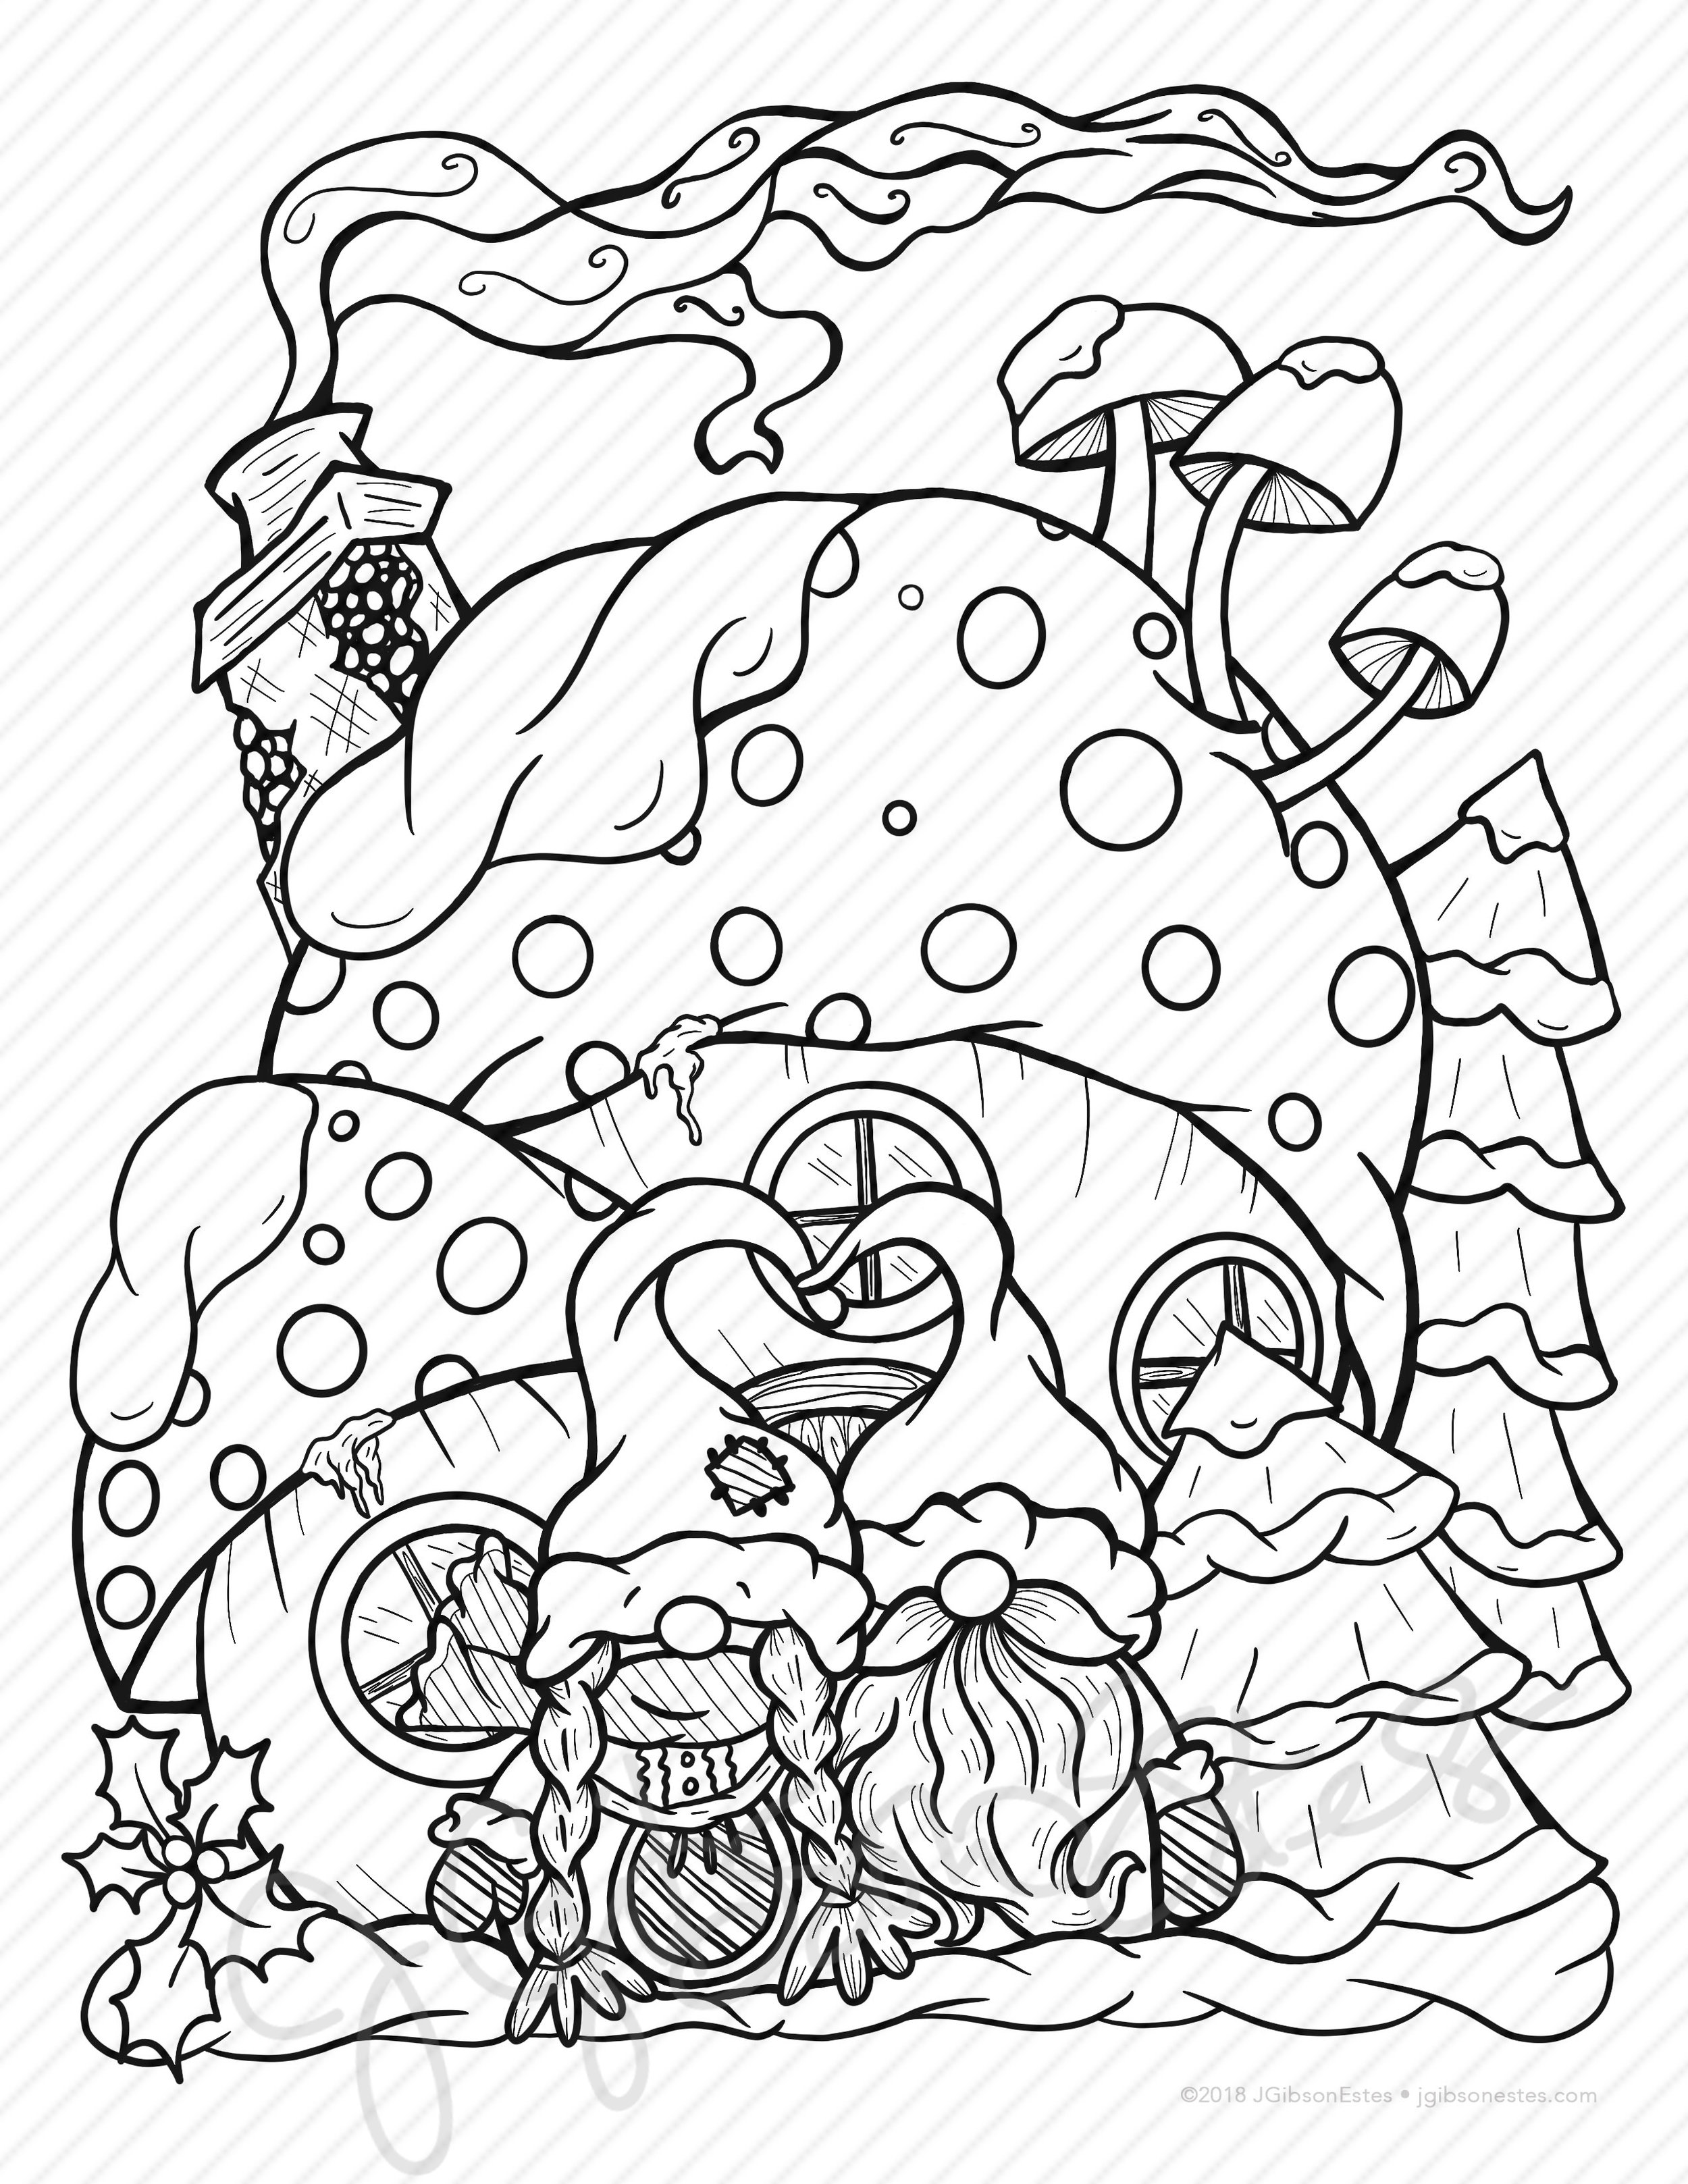 - Gnome For The Holidays - Printable Christmas Coloring Page And